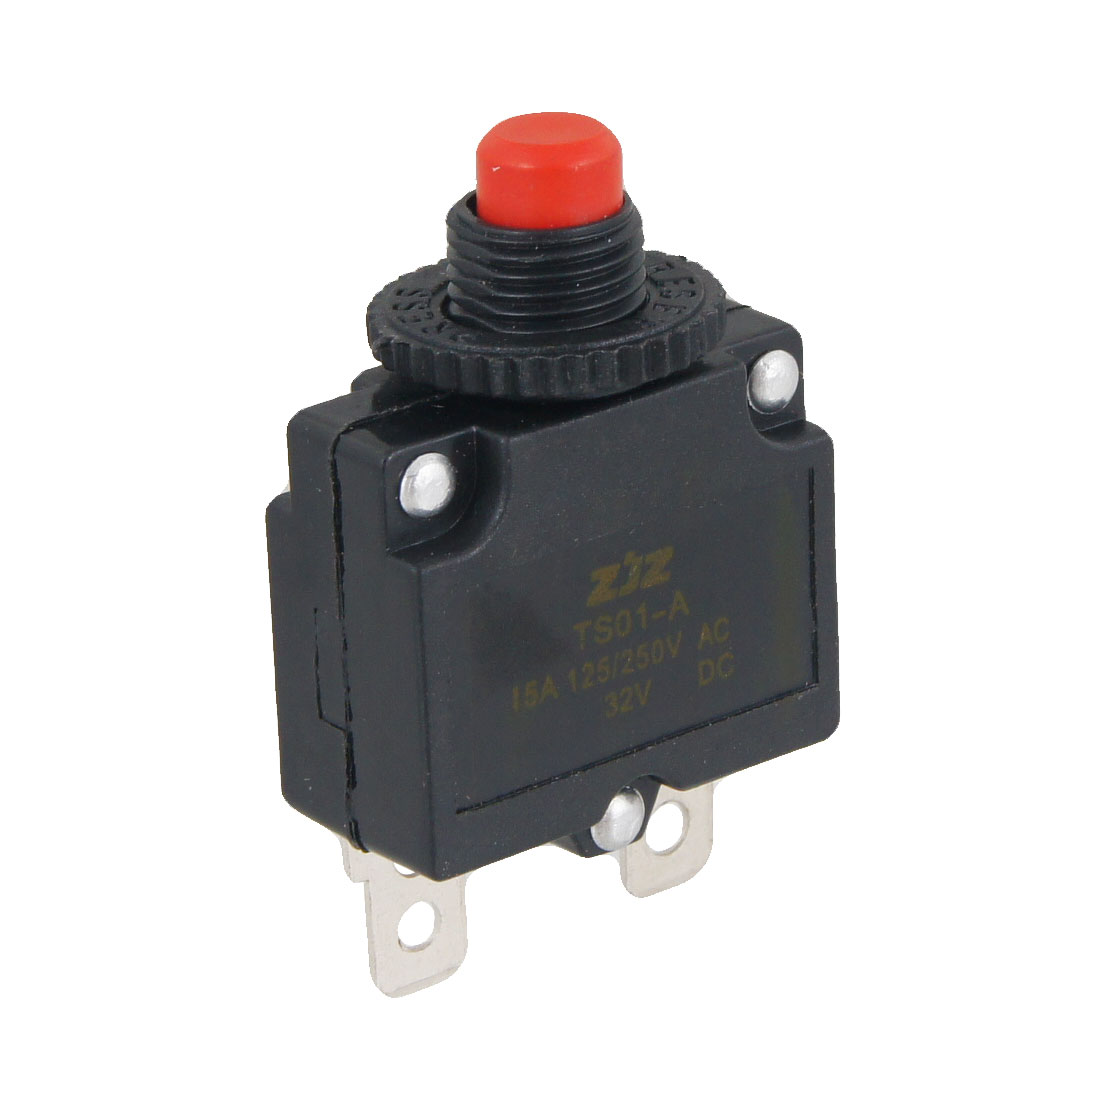 9.6mm Thread Dia DC 32V Air Compressor Circuit Breaker Overload Protector 15A